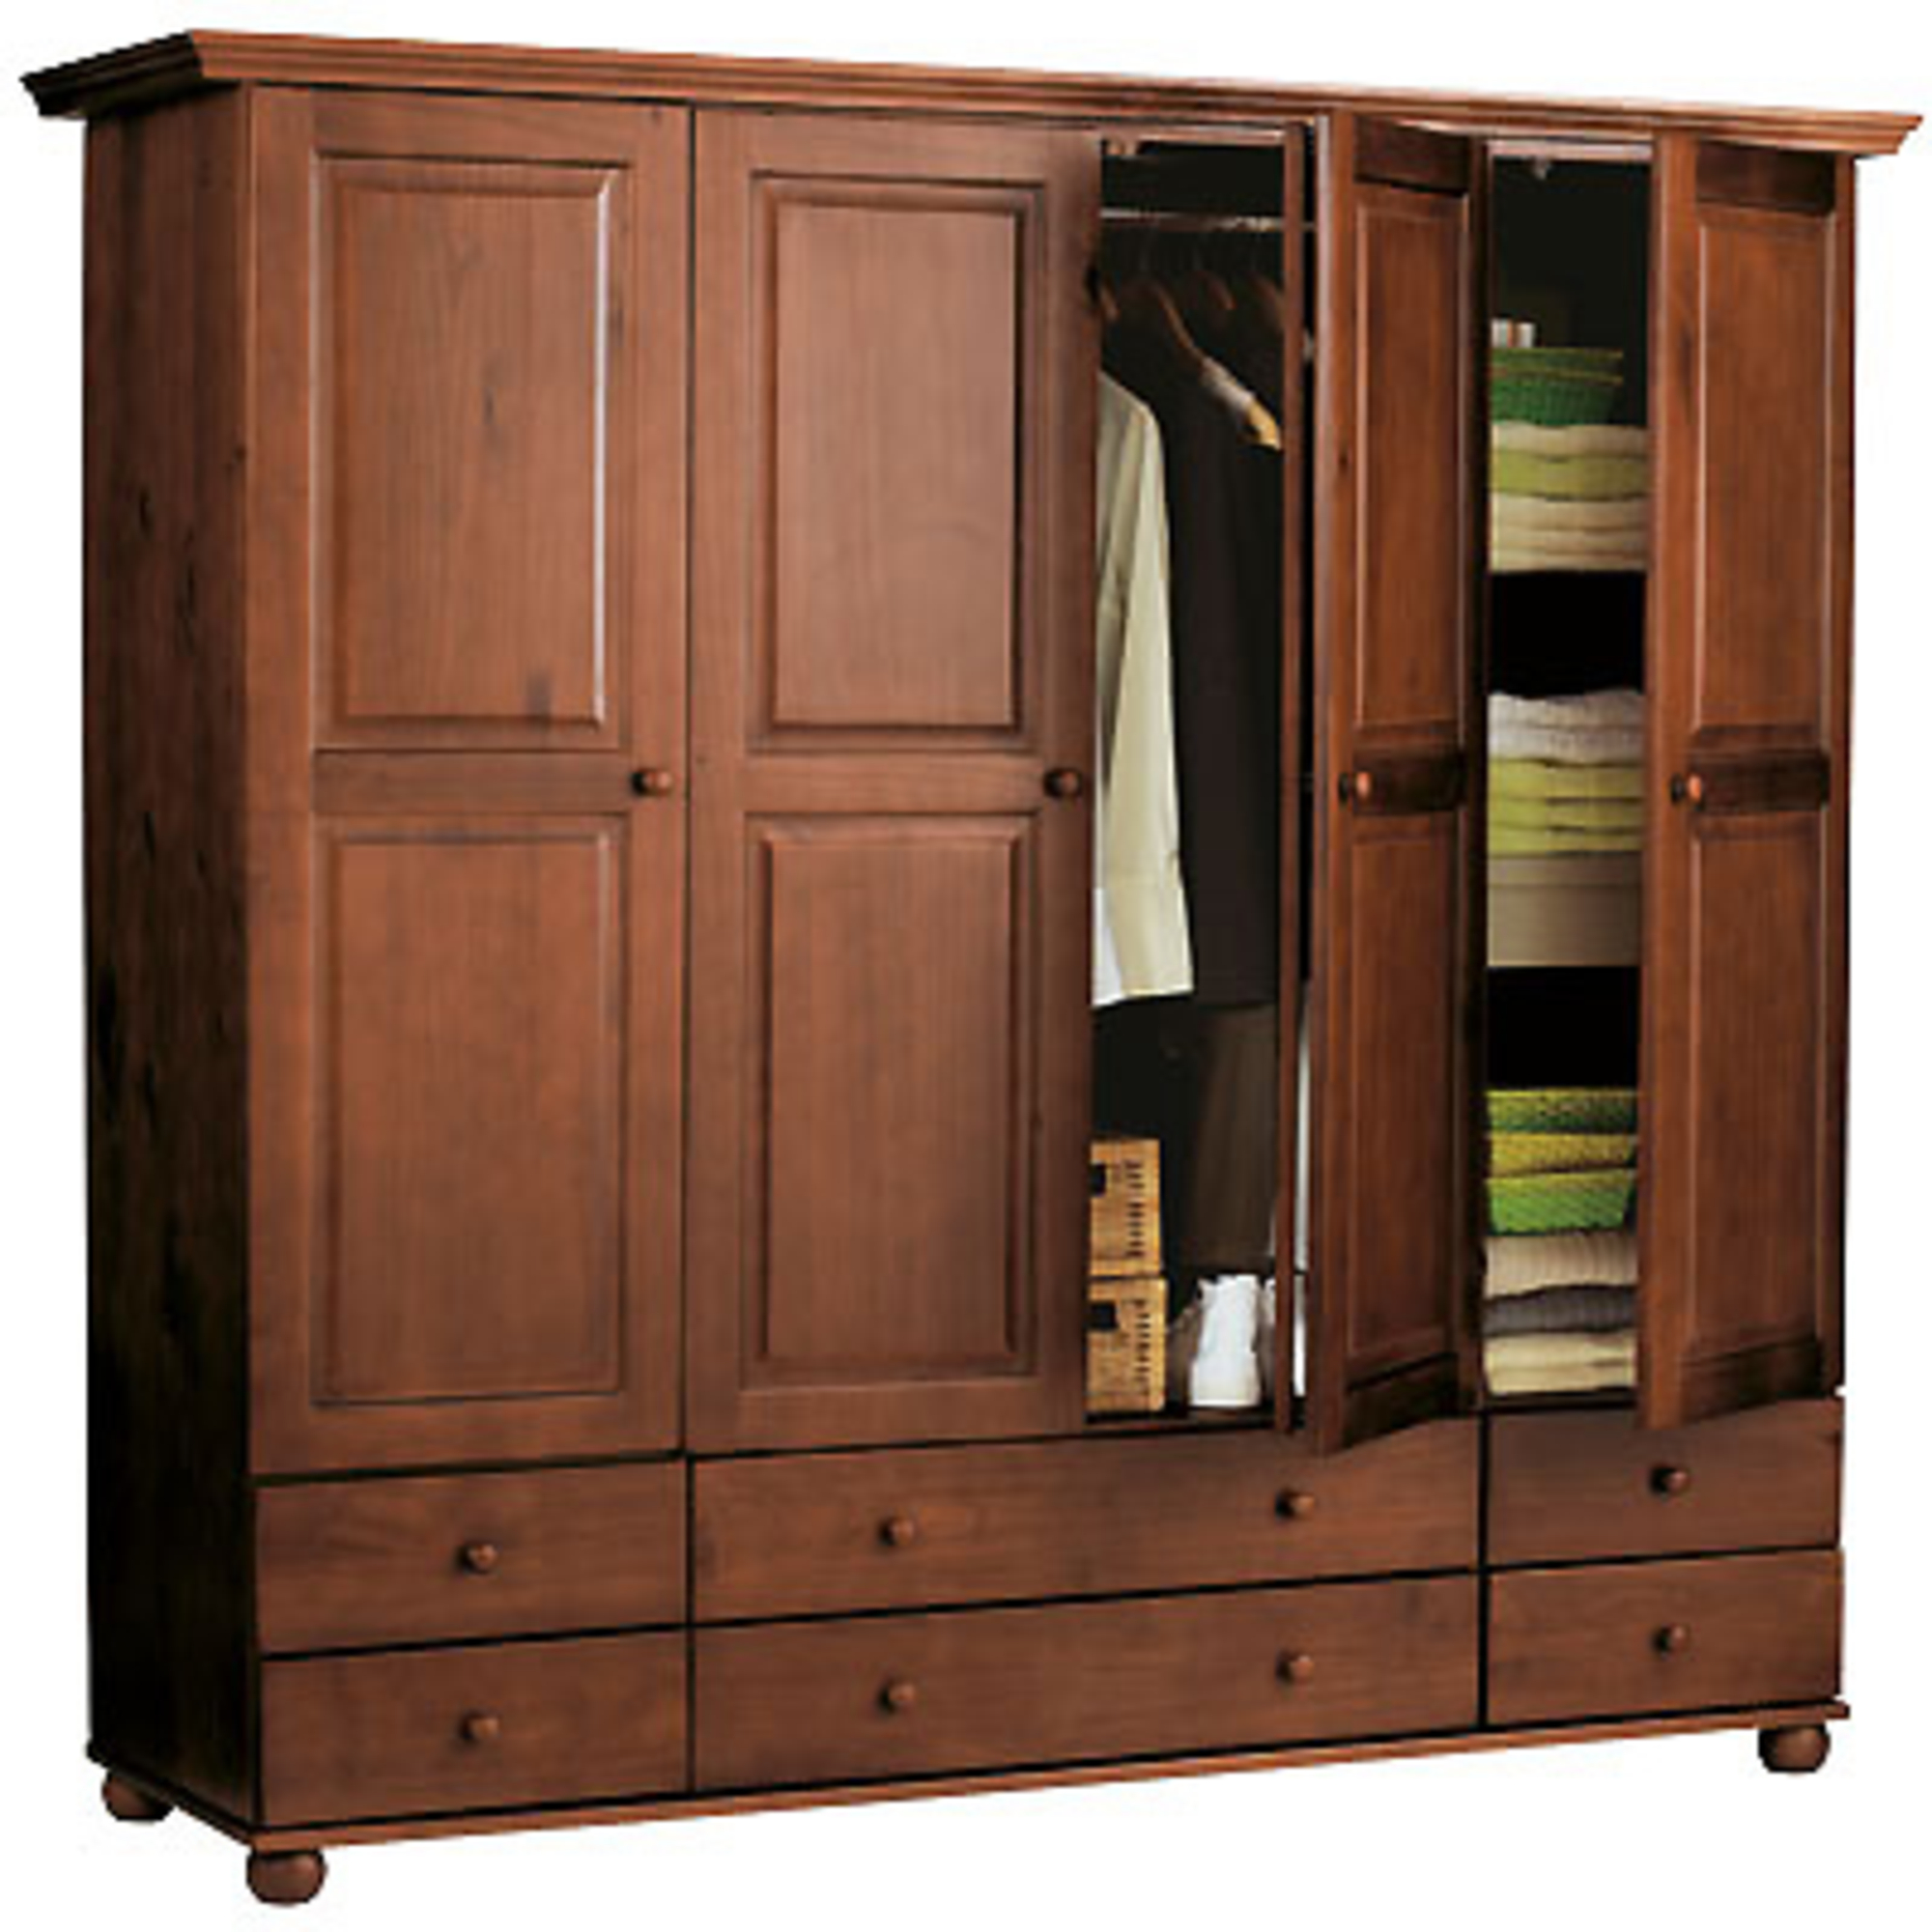 armoire la maison de valerie armoire annecy 4 portes 6 tiroirs 1 2 penderie 1 2 ling re. Black Bedroom Furniture Sets. Home Design Ideas